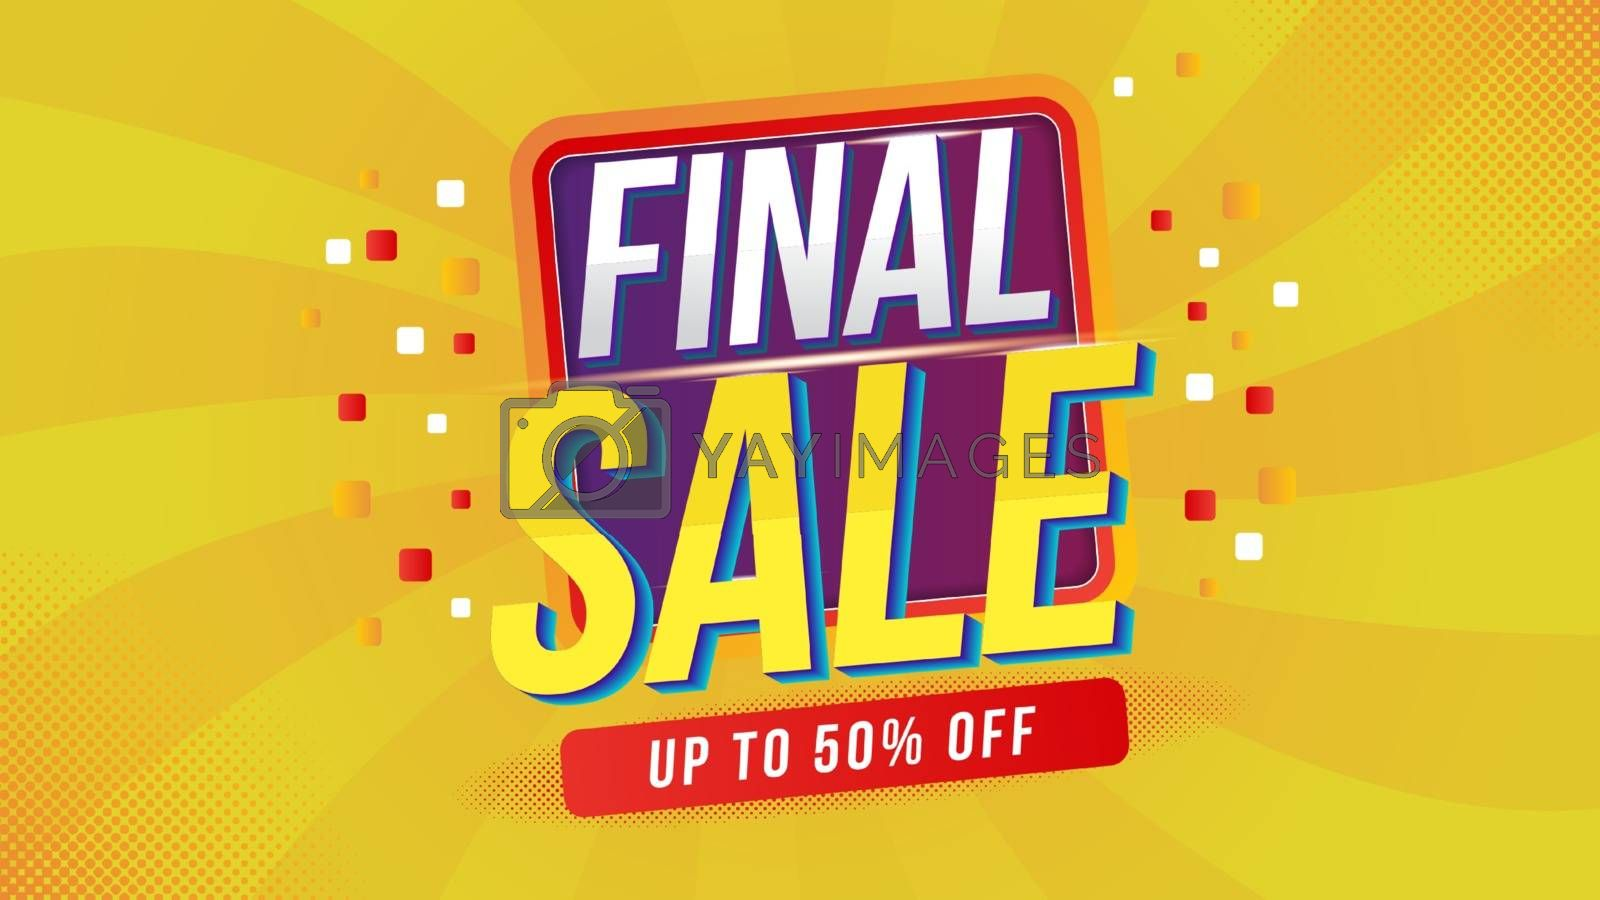 Final Sale banner clearance offer discout layout on yellow background with special percents off. Template design for list, page, mockup brochure style, banner, idea, cover, booklet, print and flyer.